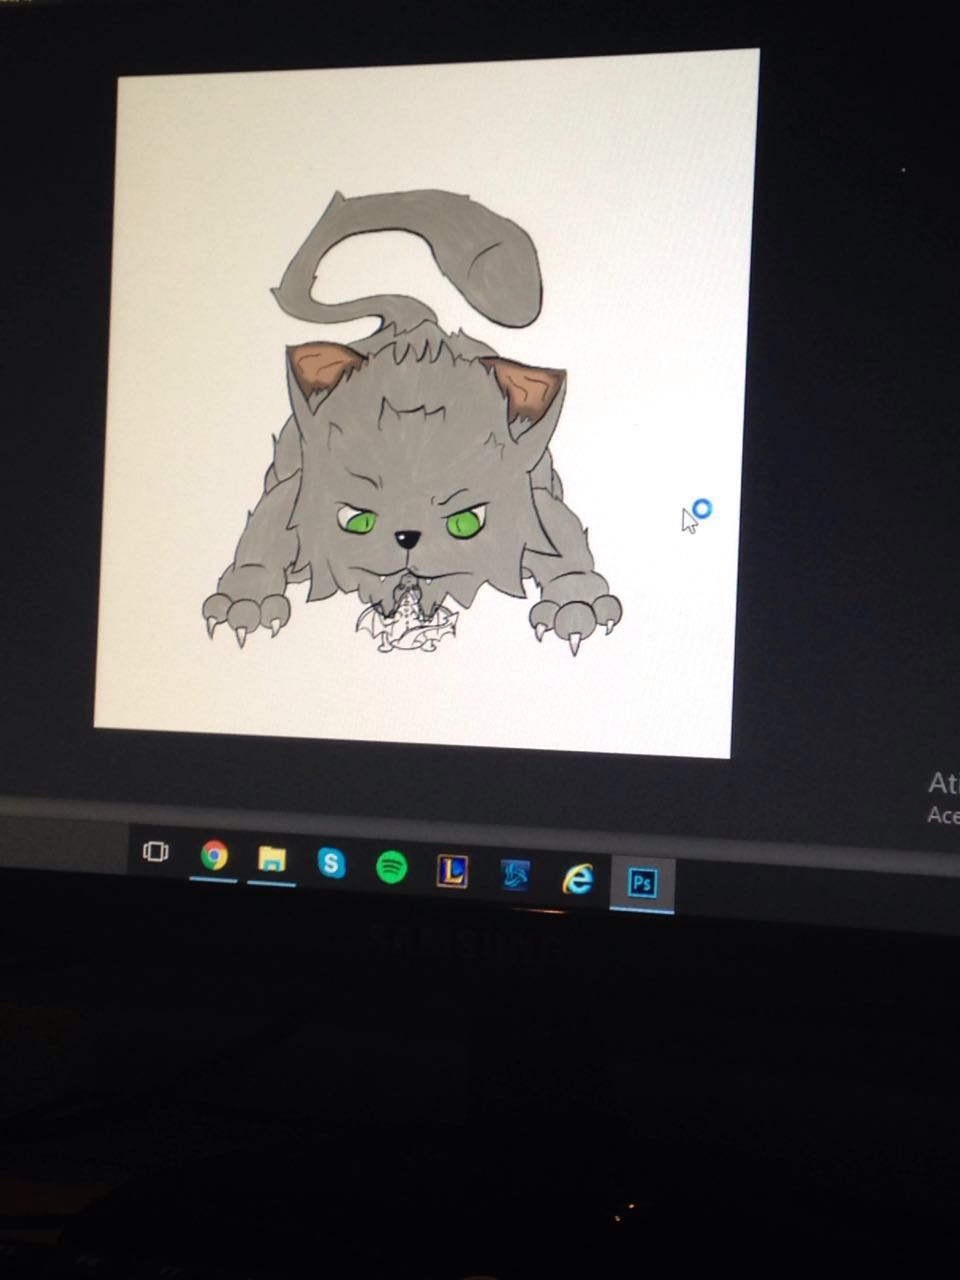 work in progress pt 2 by fontes99 on newgrounds